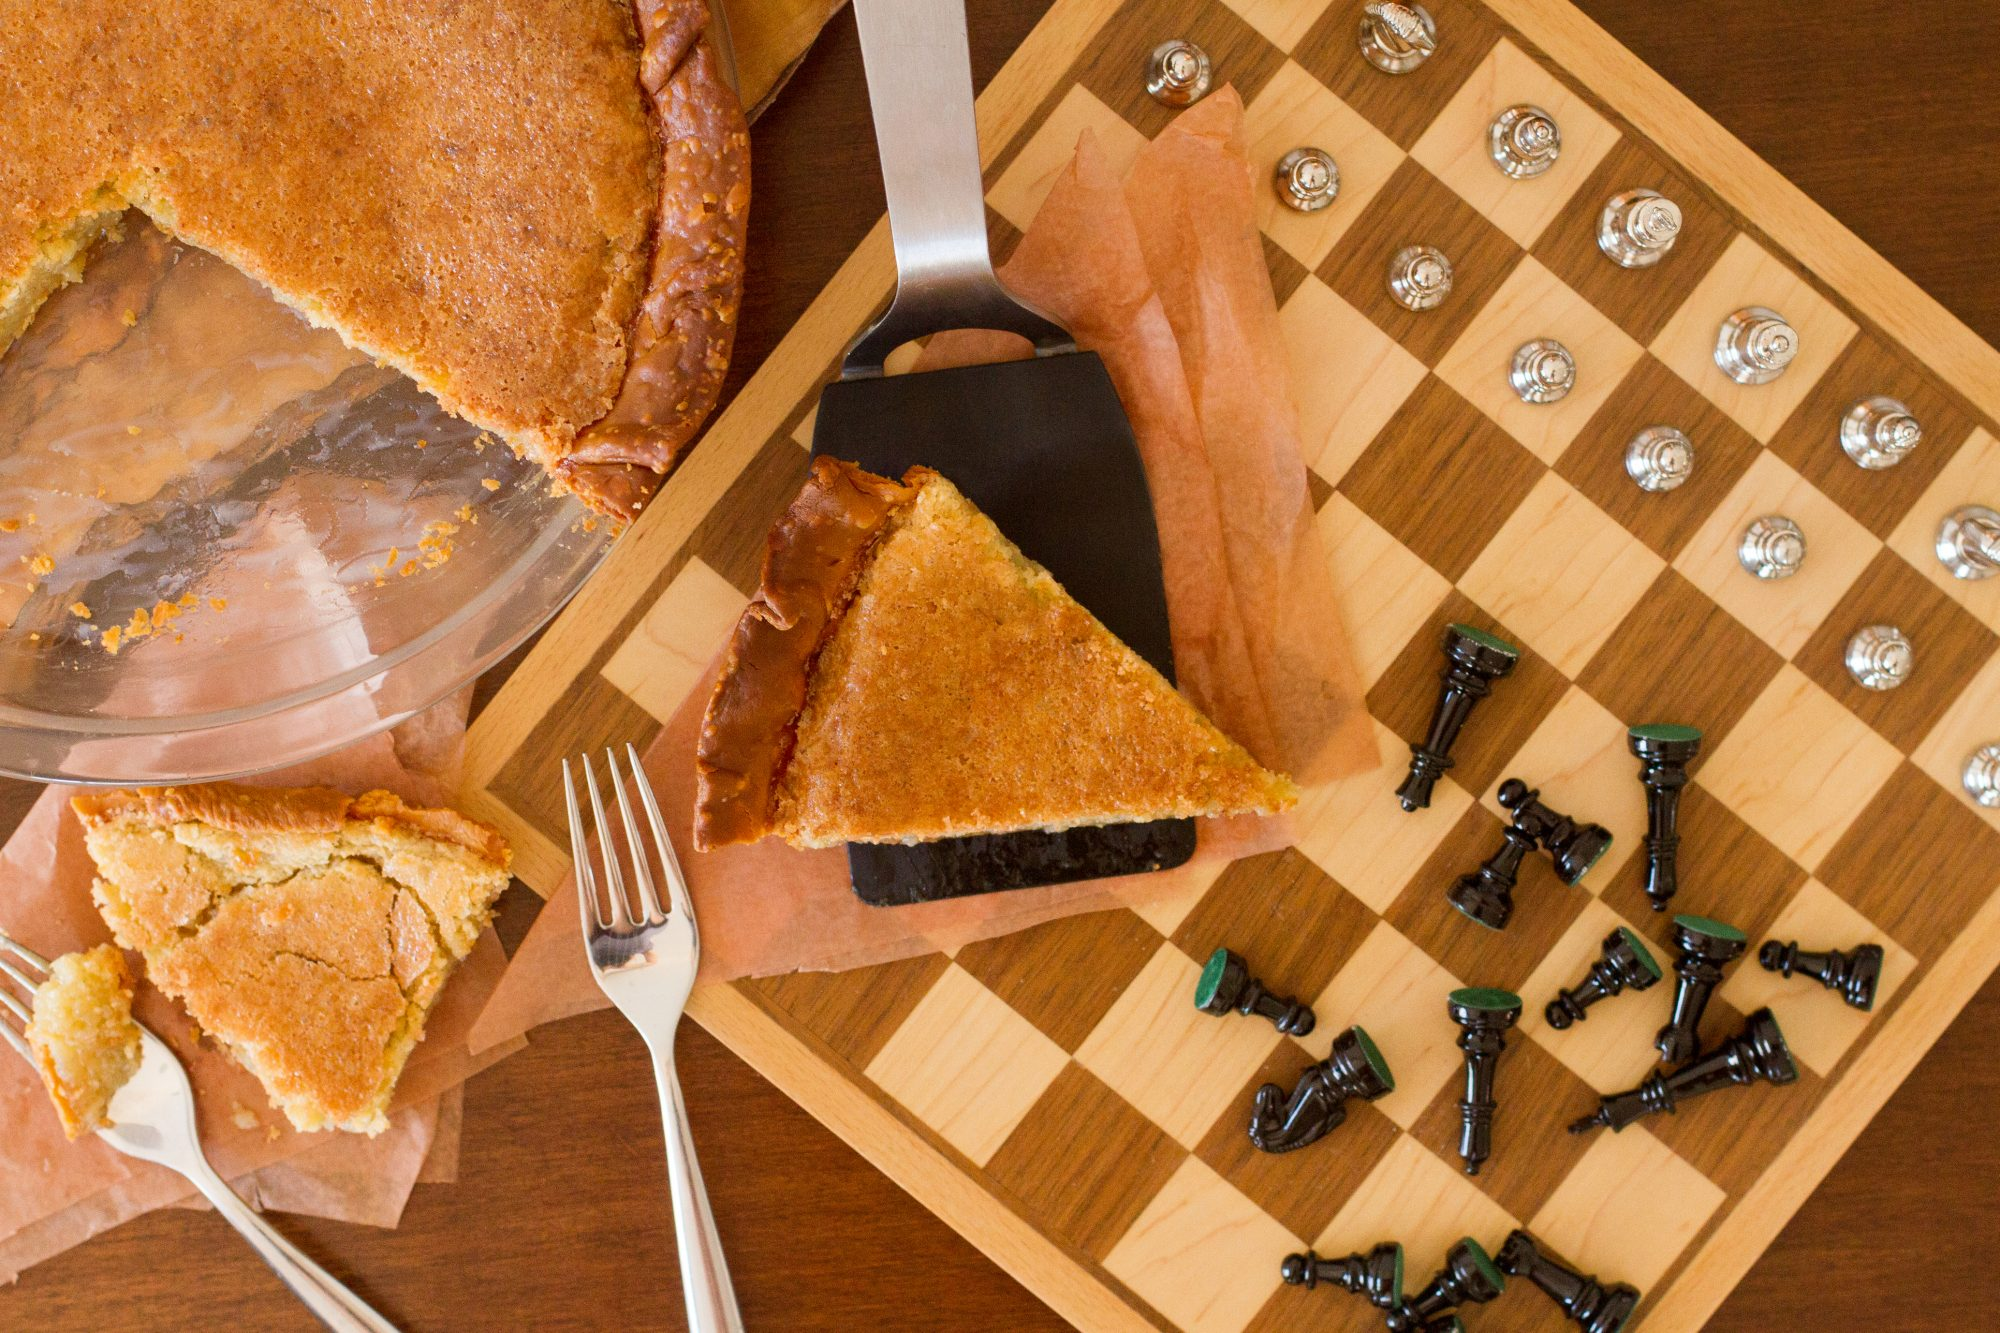 Chess pie on chess board Getty 5/21/20